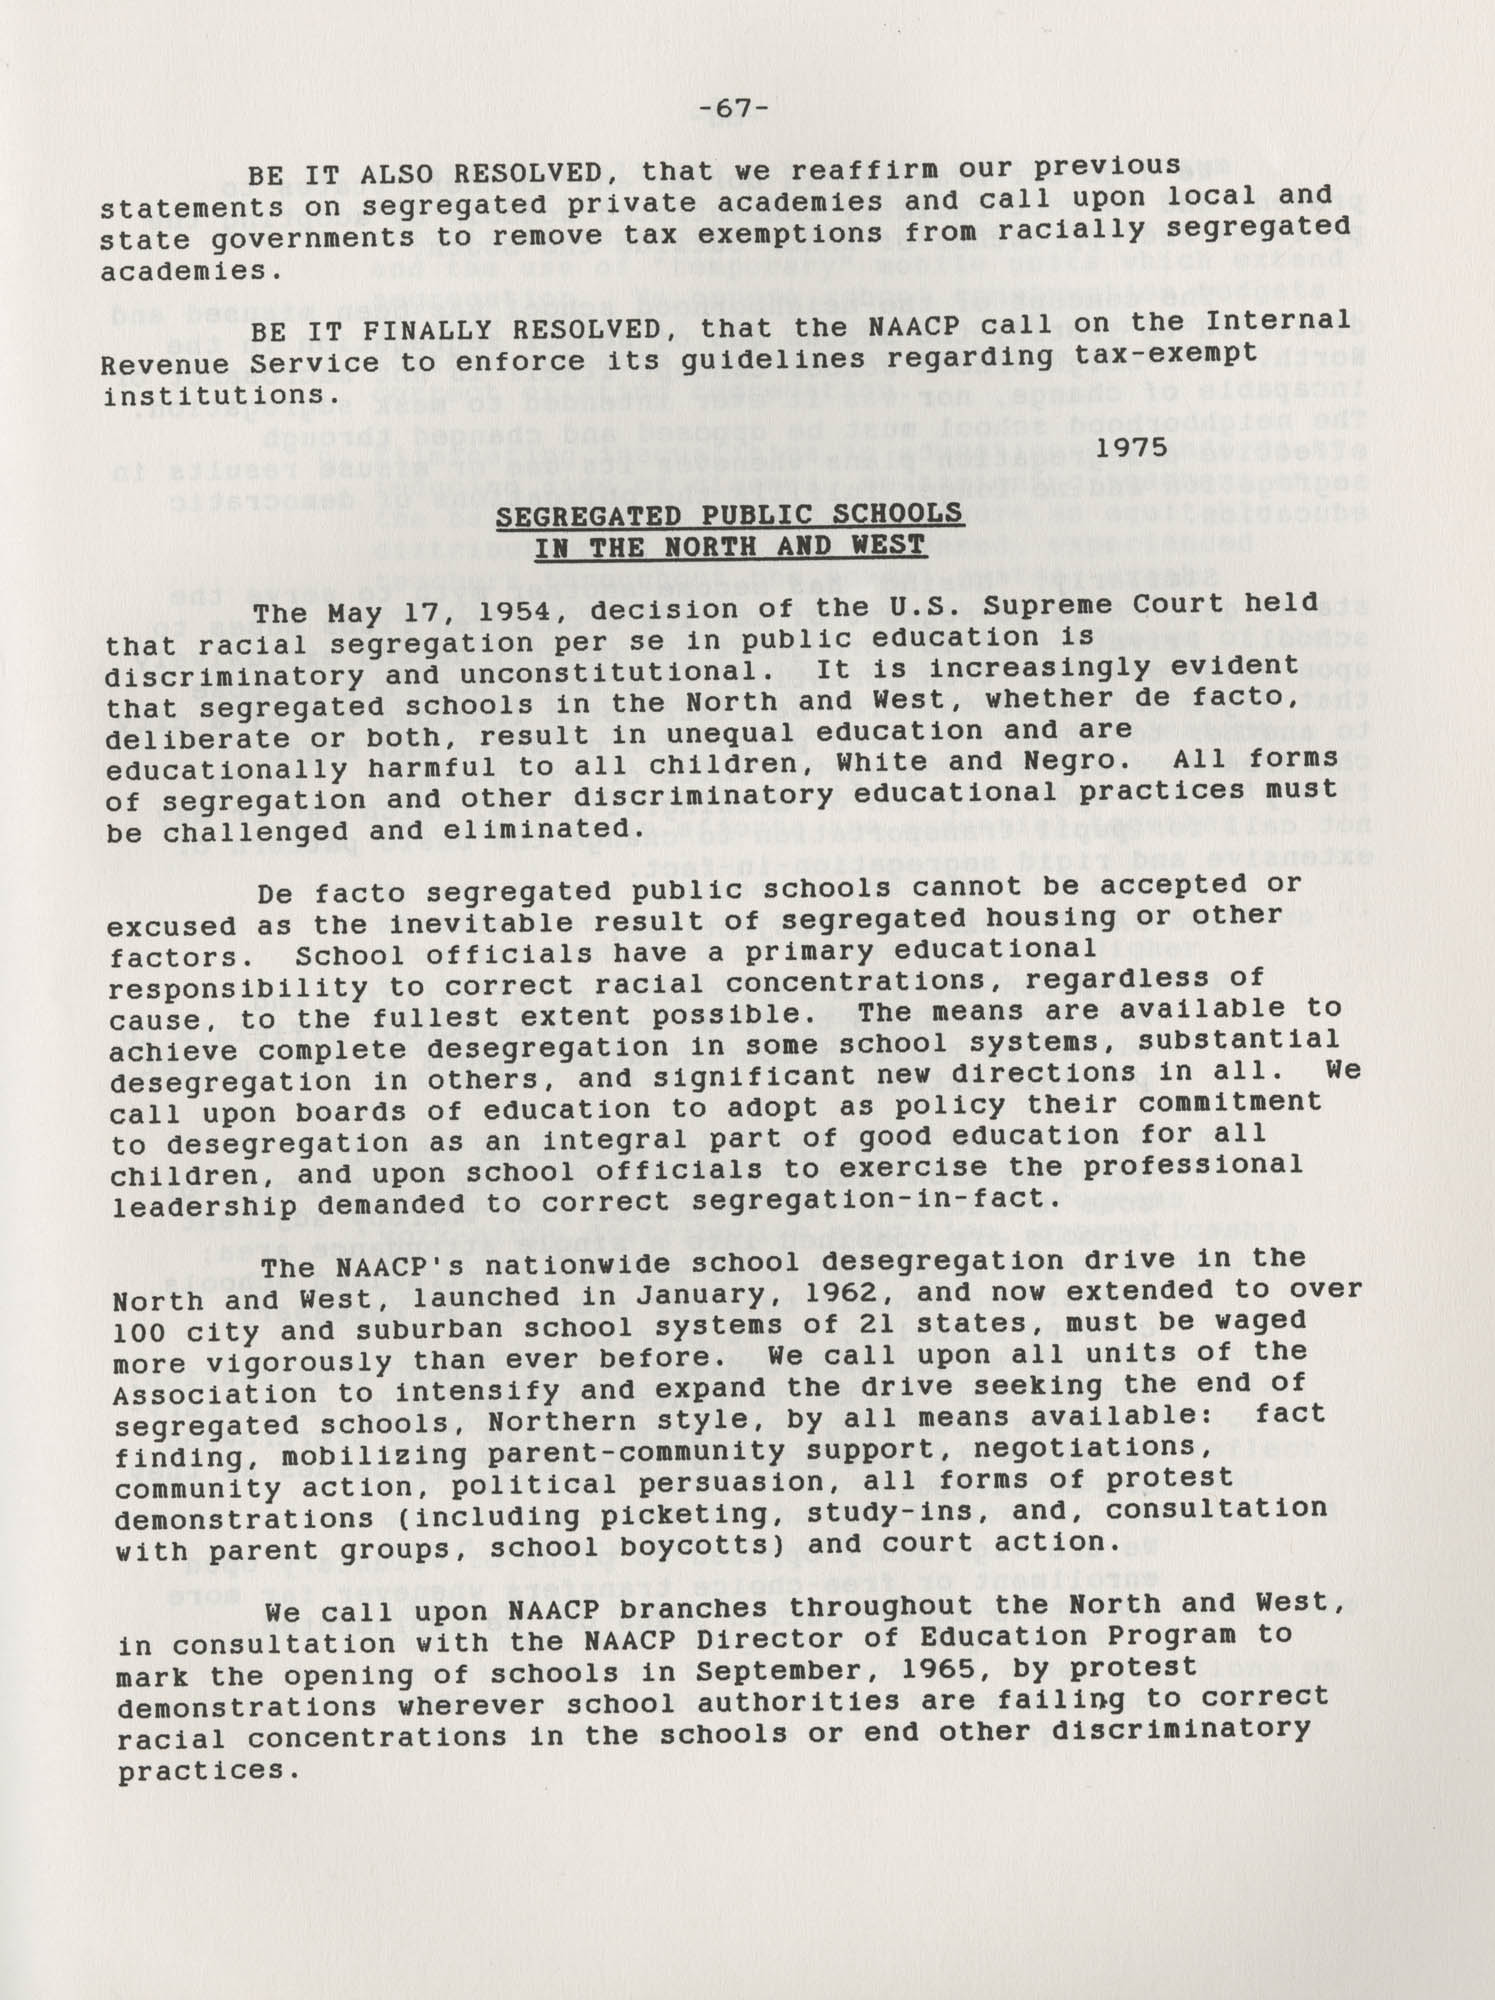 NAACP Resolutions on Education, 1970-1989, Index to Education Resolutions, Page 67